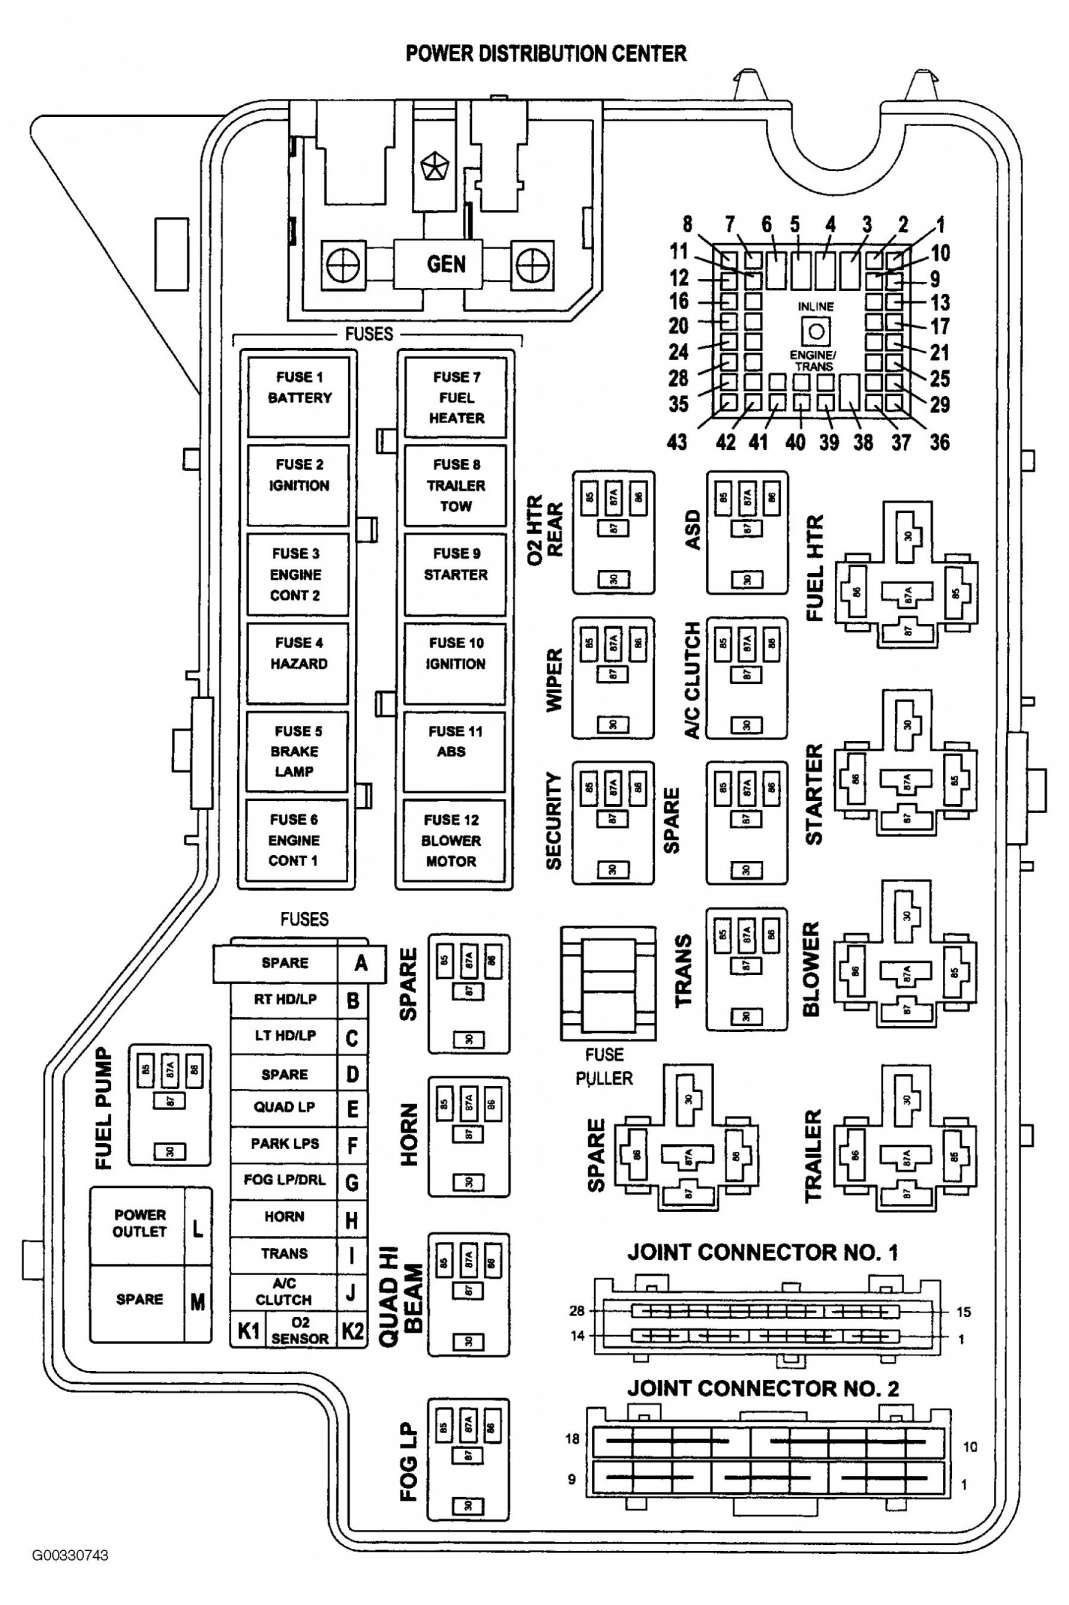 2002 dodge ram 1500 fuse box diagram wiring diagrams database 2002 dodge ram 1500 fuse box diagram